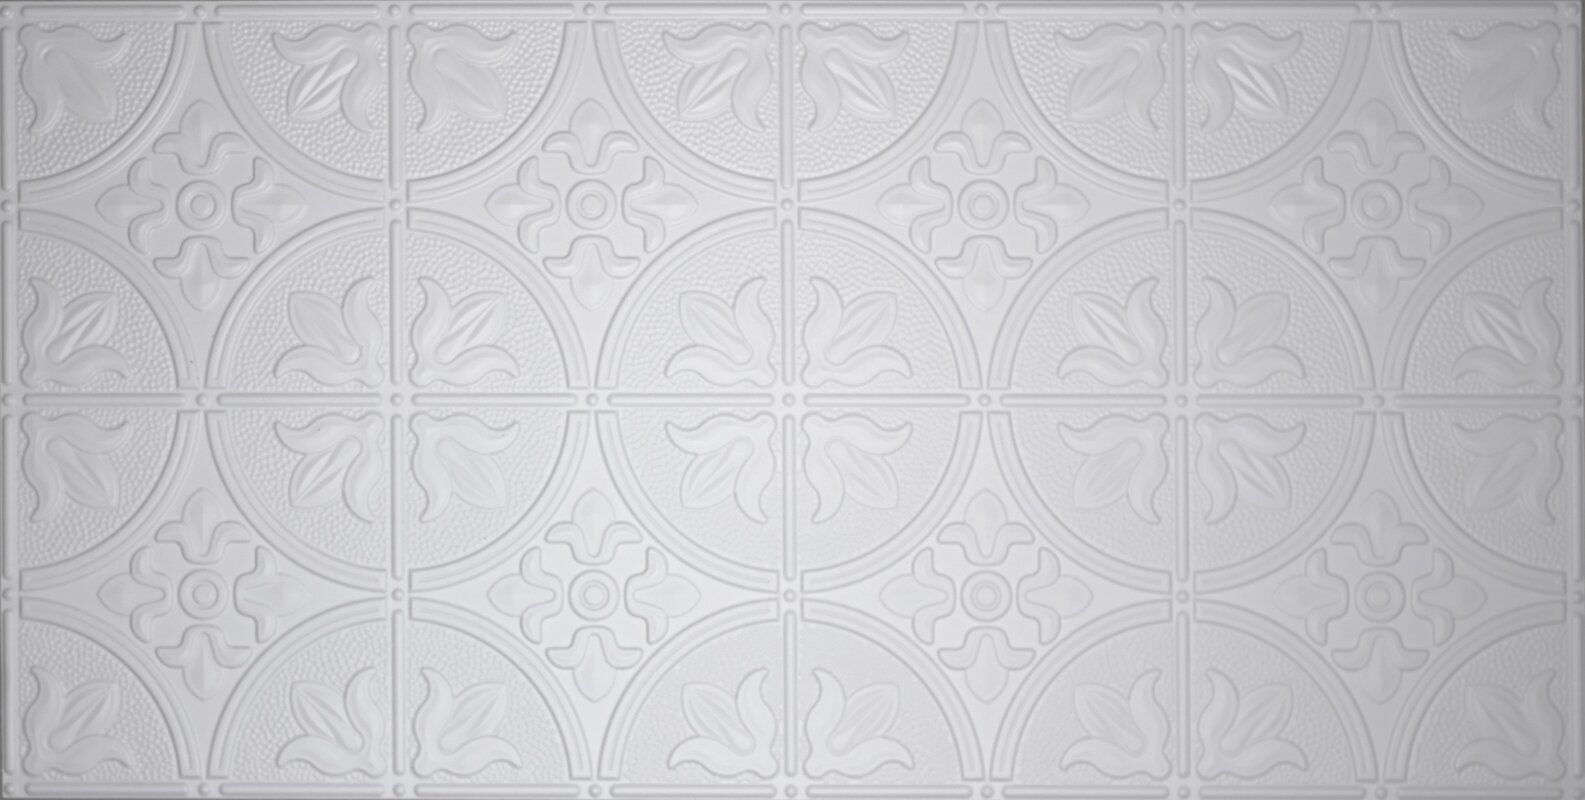 Fine 12X24 Floor Tile Patterns Thin 16X32 Ceiling Tiles Solid 2 X 6 Subway Tile Backsplash 24X48 Ceiling Tiles Old 2X8 Subway Tile Dark3 Tile Patterns For Floors Global Specialty Products Glue Up Traditional 2\u0027 X 4\u0027 Tin Ceiling ..